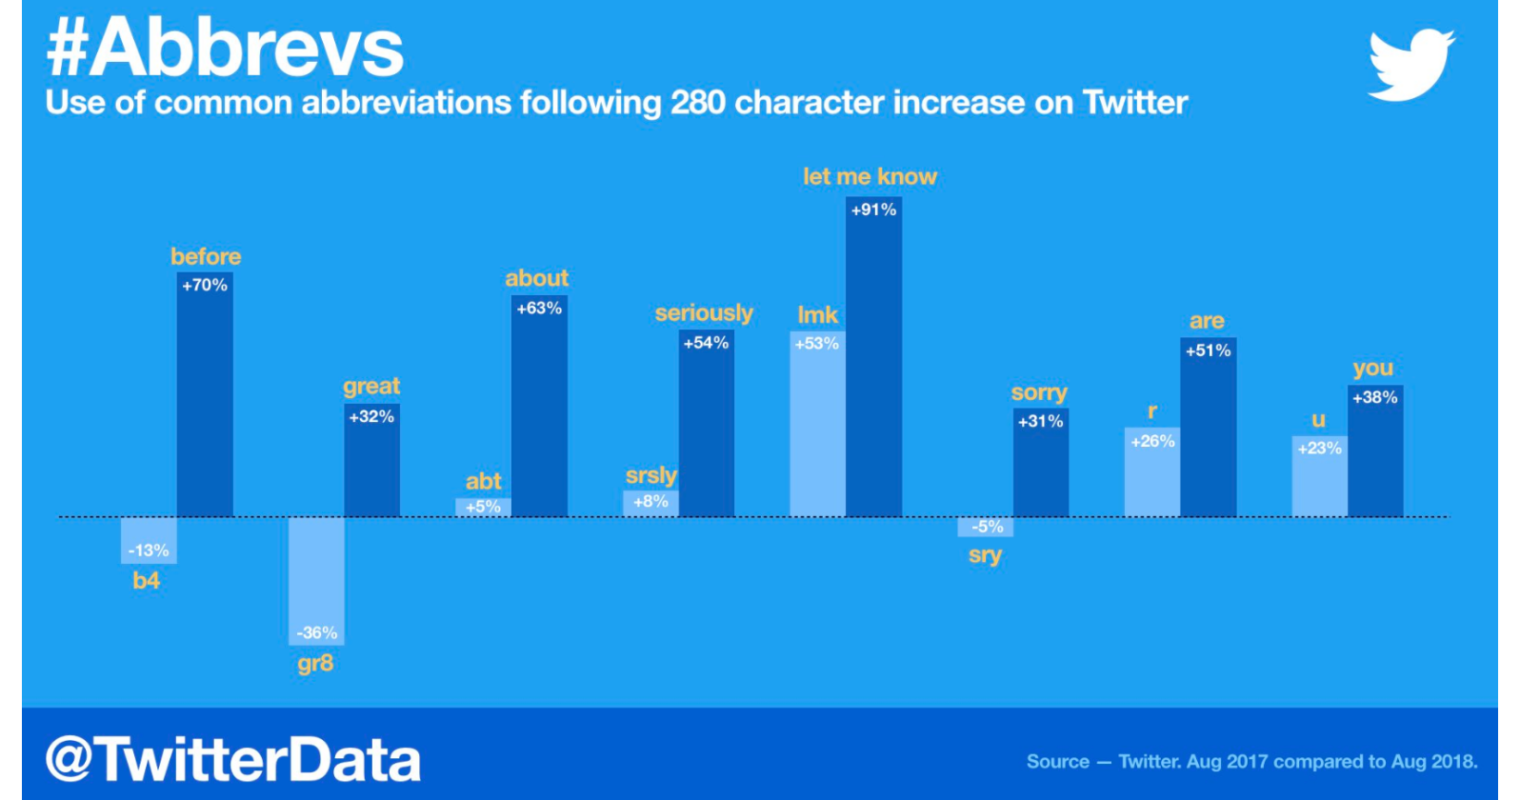 Twitter Doubling its Character Limit from 140 to 280 Has Not Led to Longer Tweets